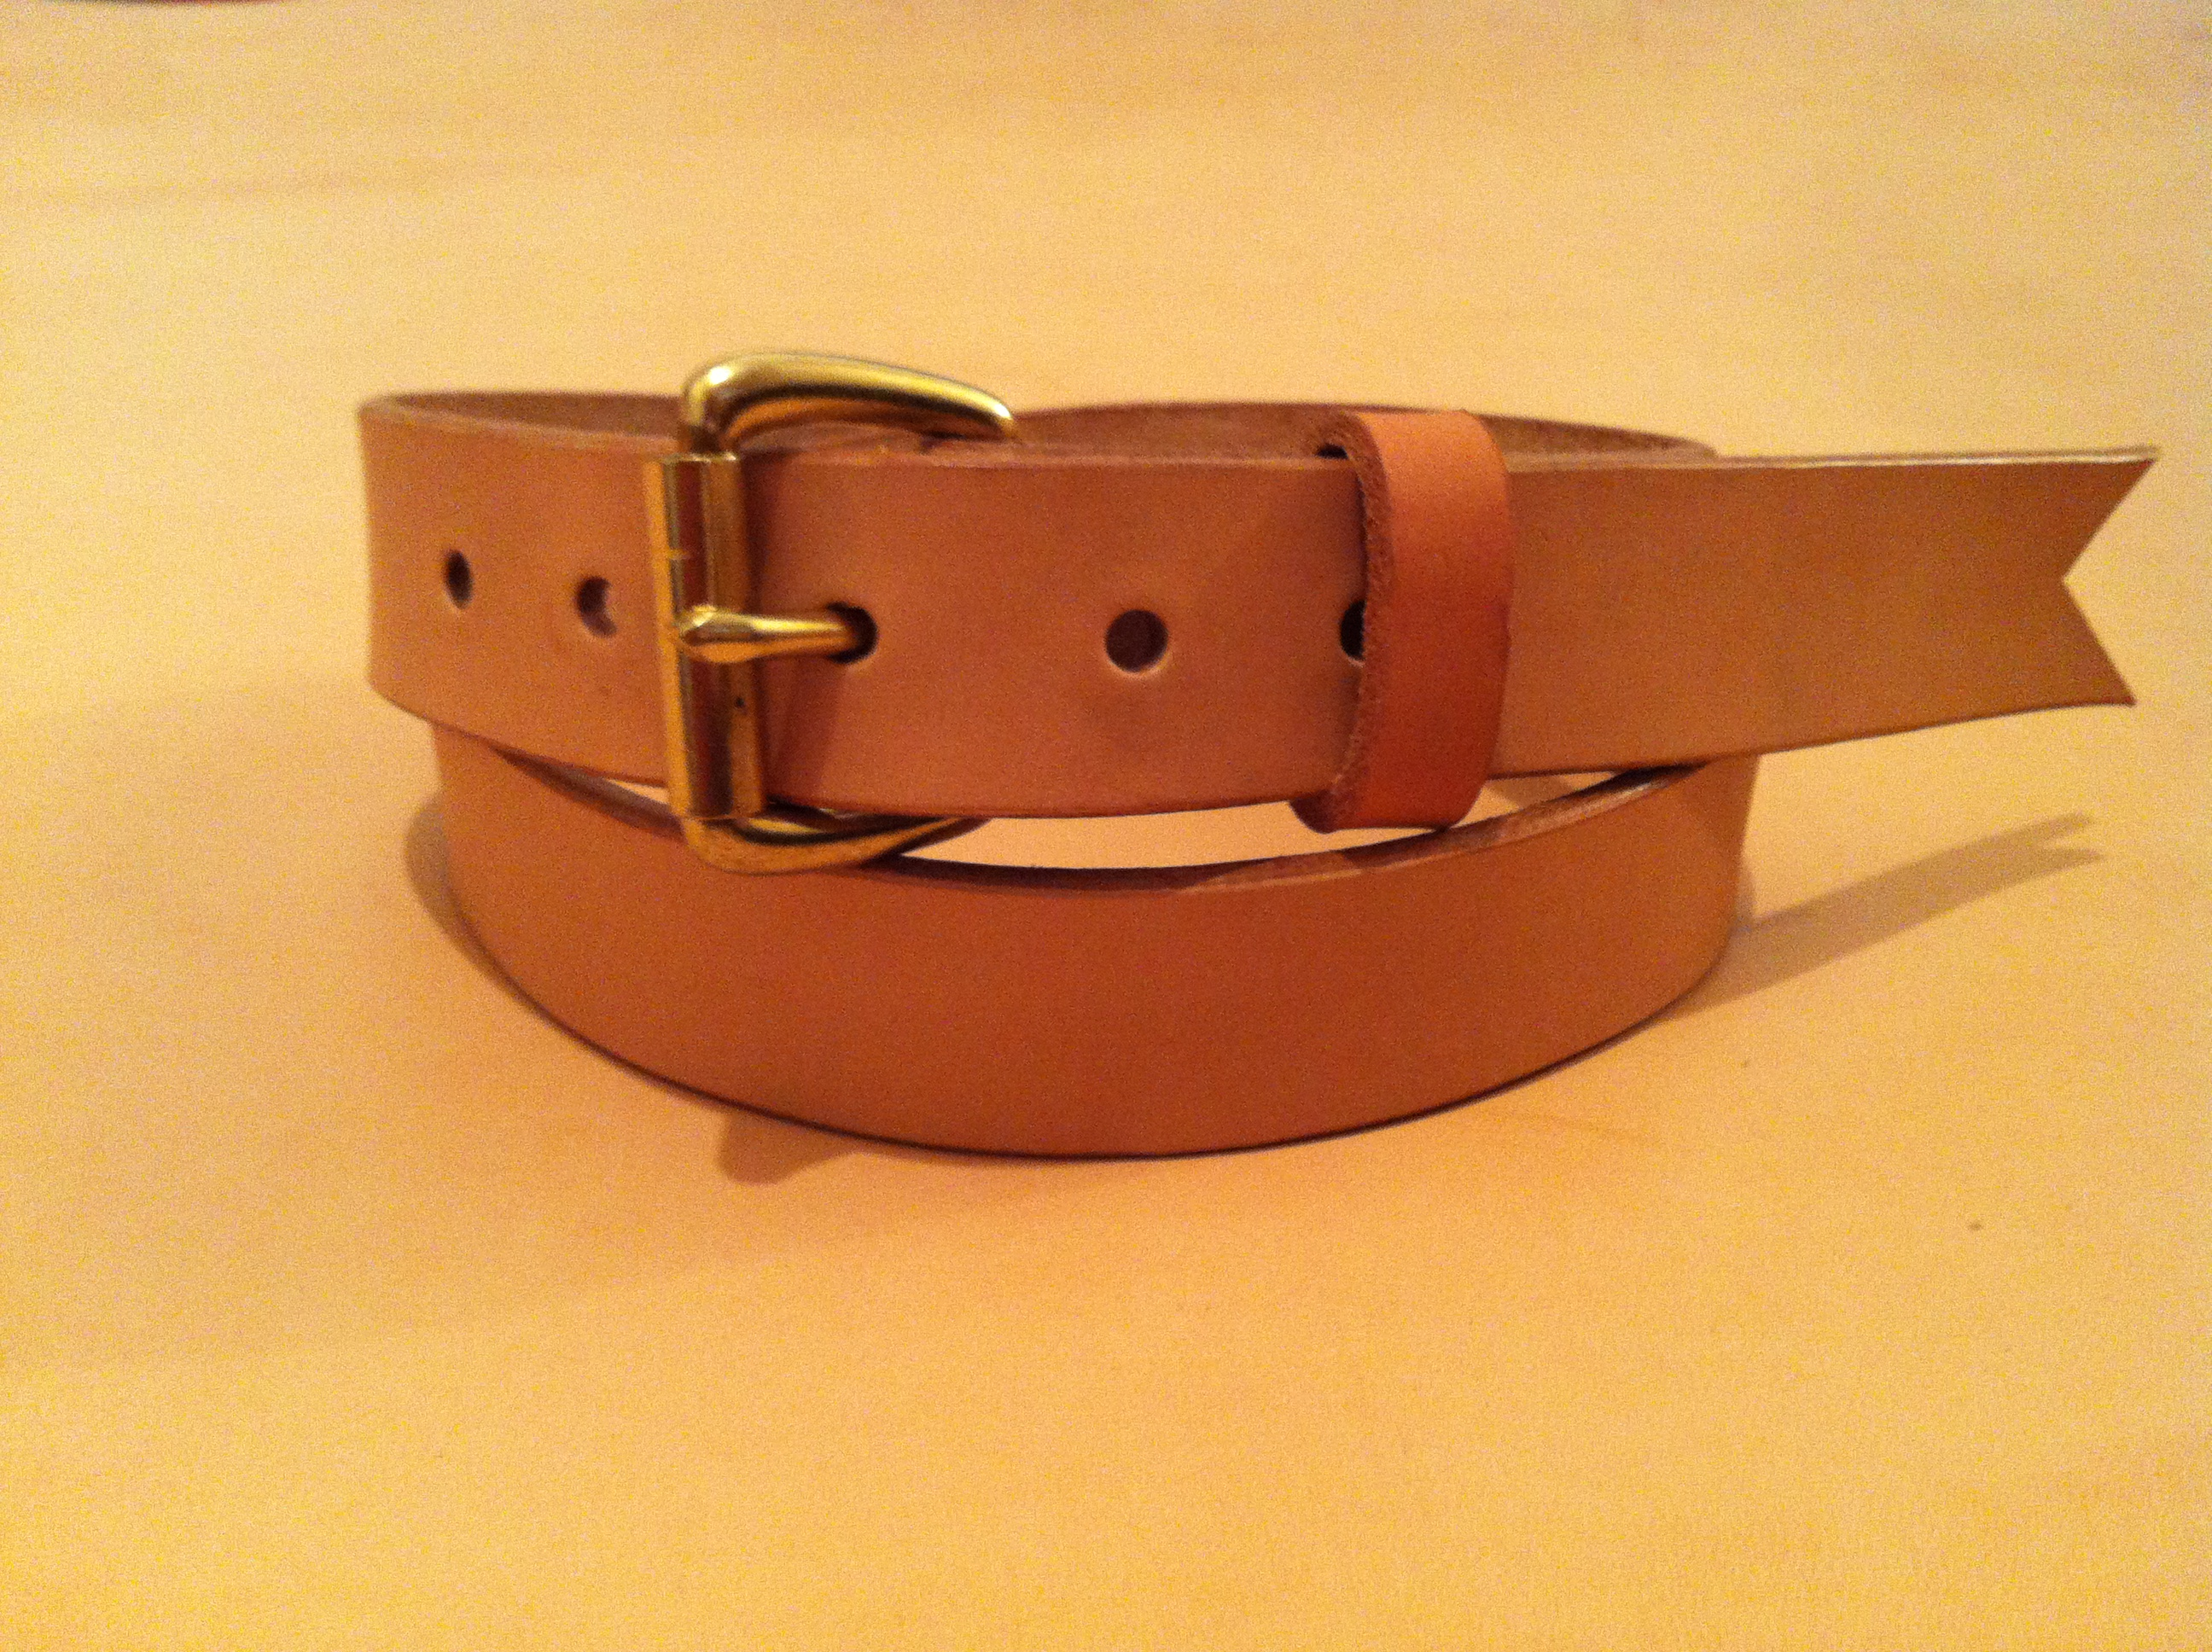 quality leather unfinished belts page 2